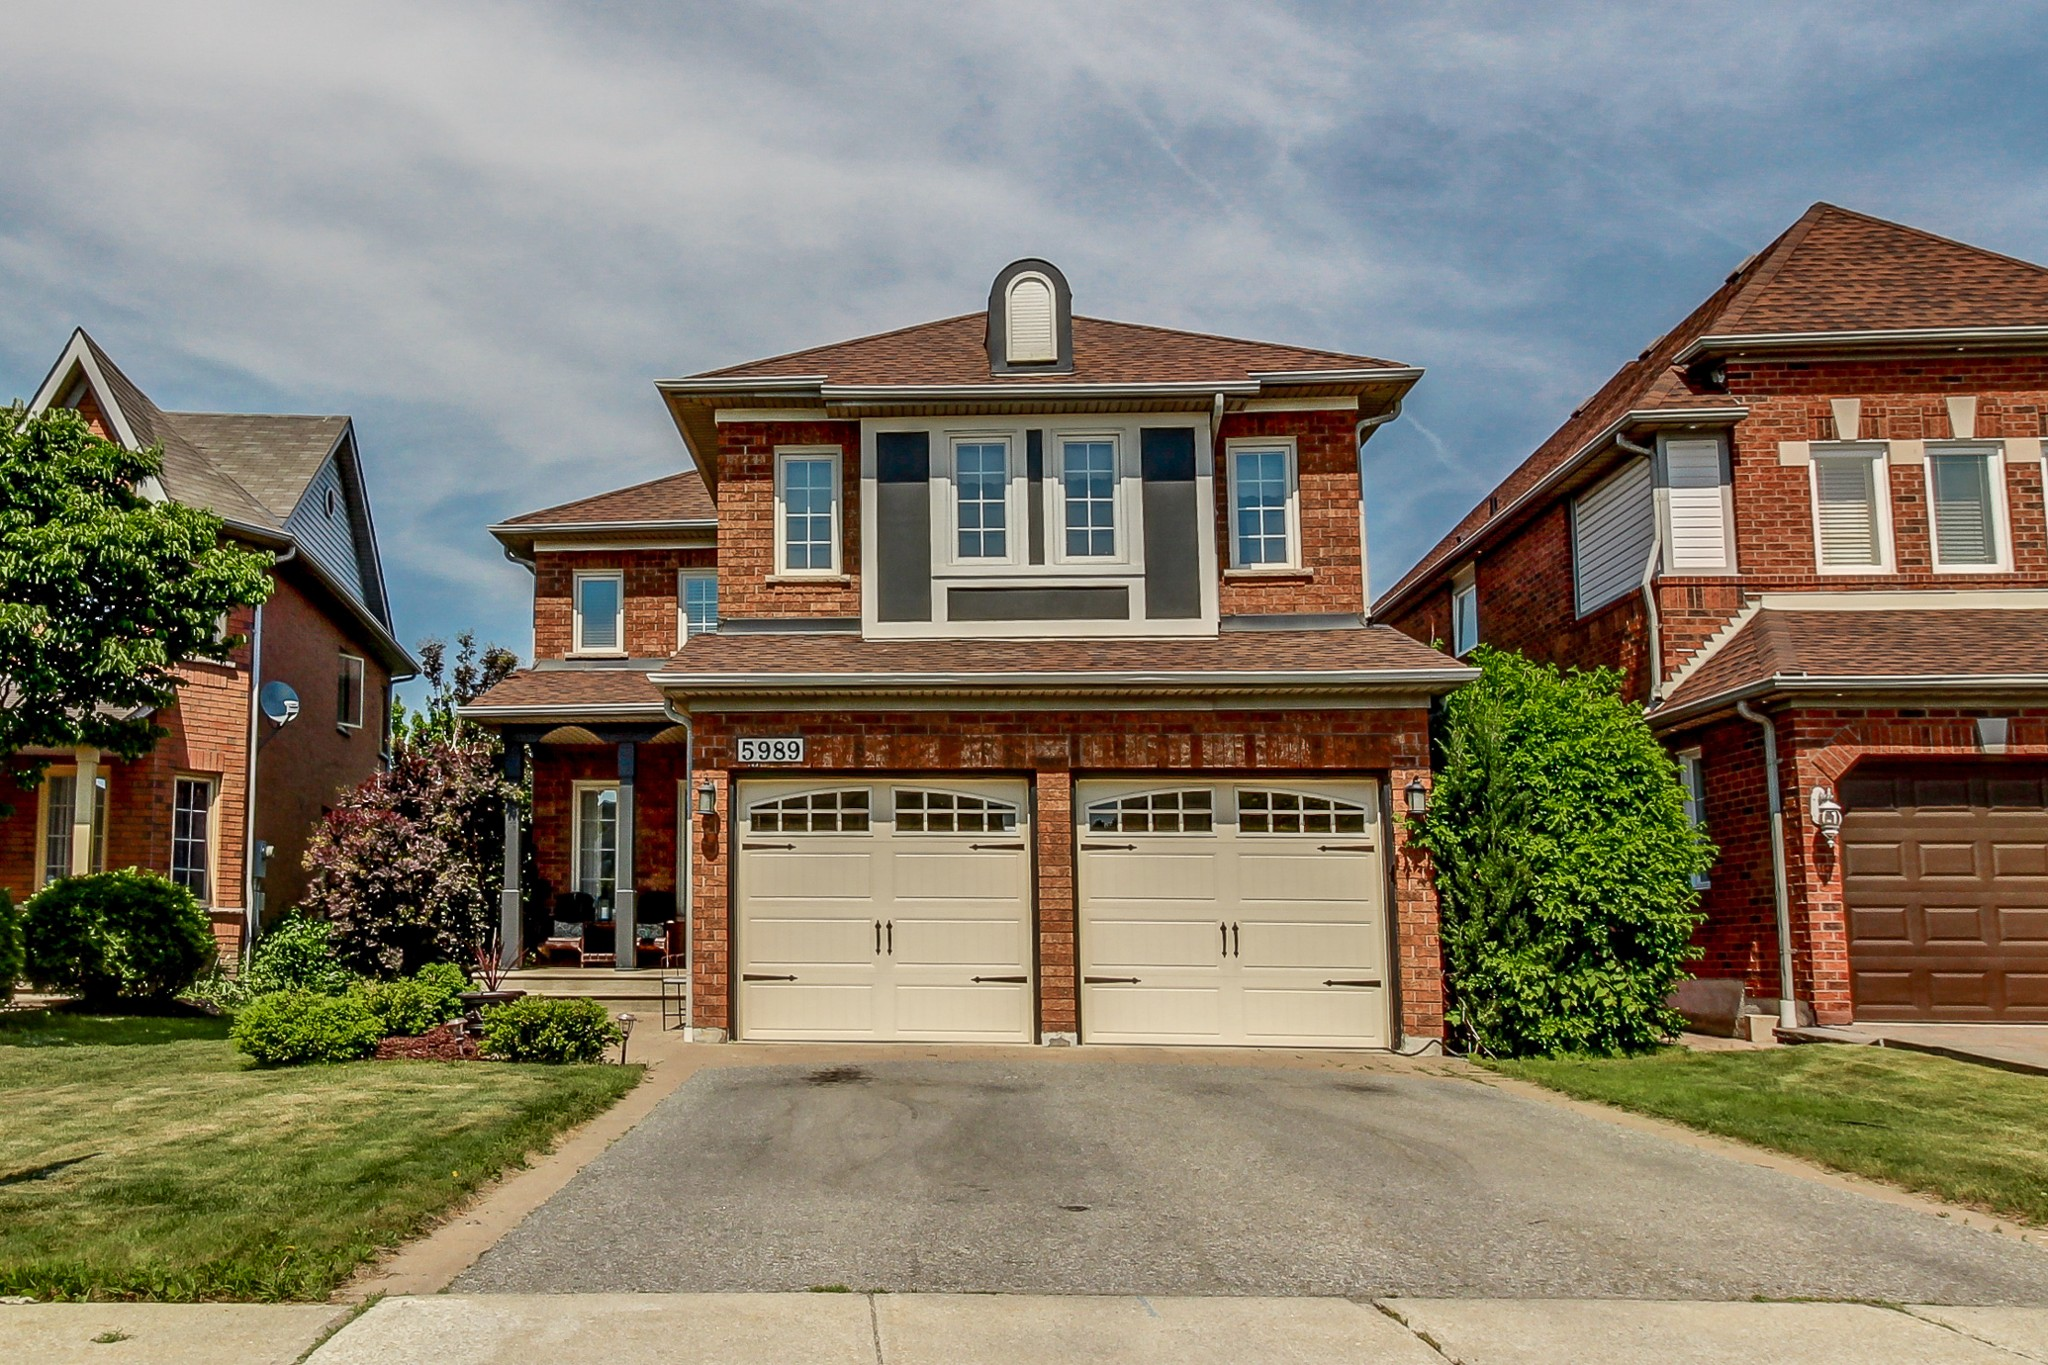 Main Photo: 5989 Greensboro Drive in Mississauga: Central Erin Mills House (2-Storey) for sale : MLS®# W4147283